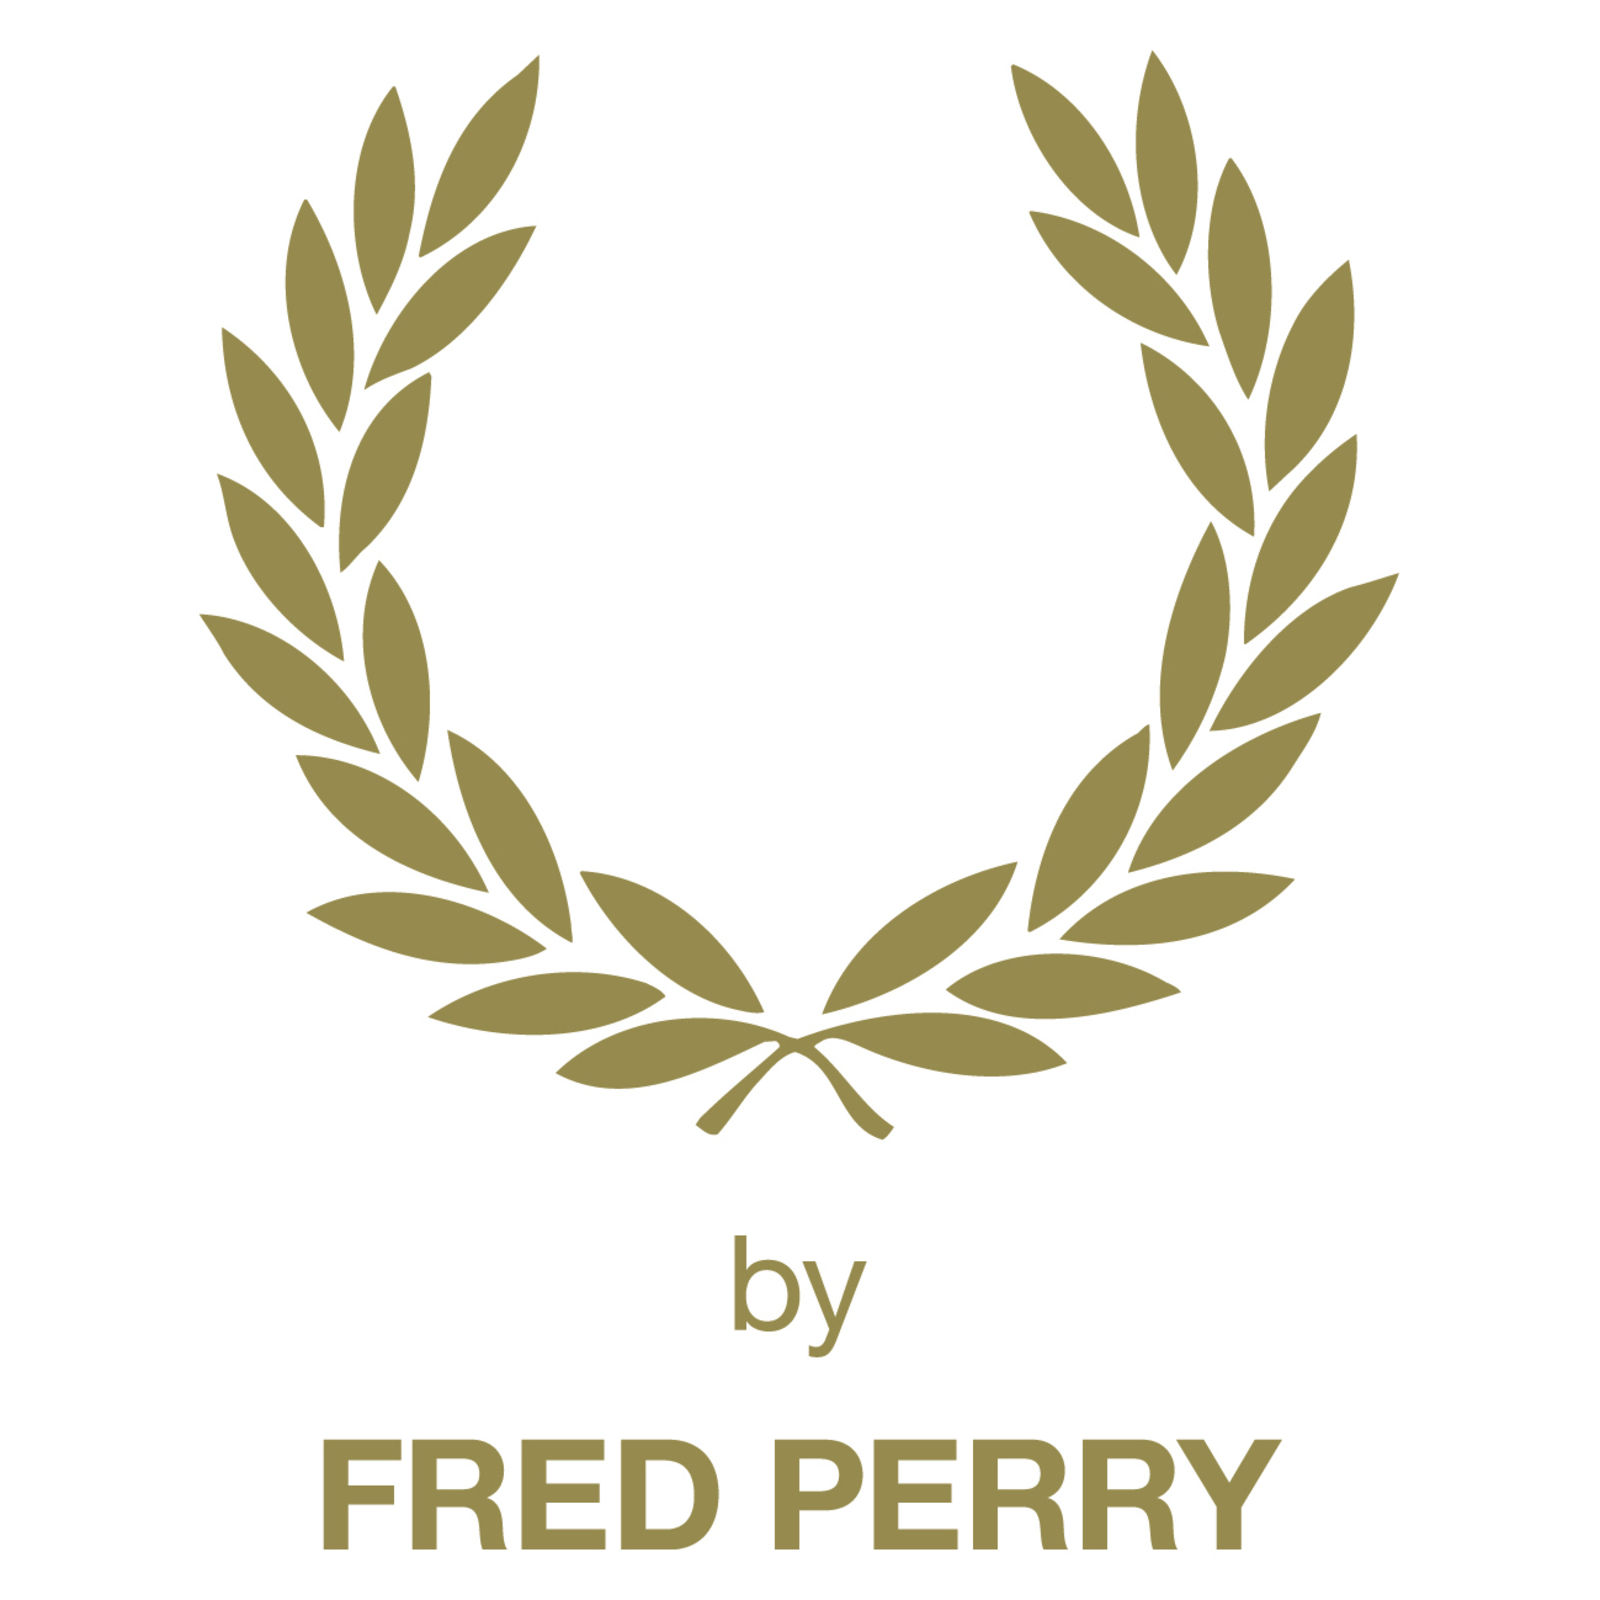 FRED PERRY Laurel Wreath (Bild 1)